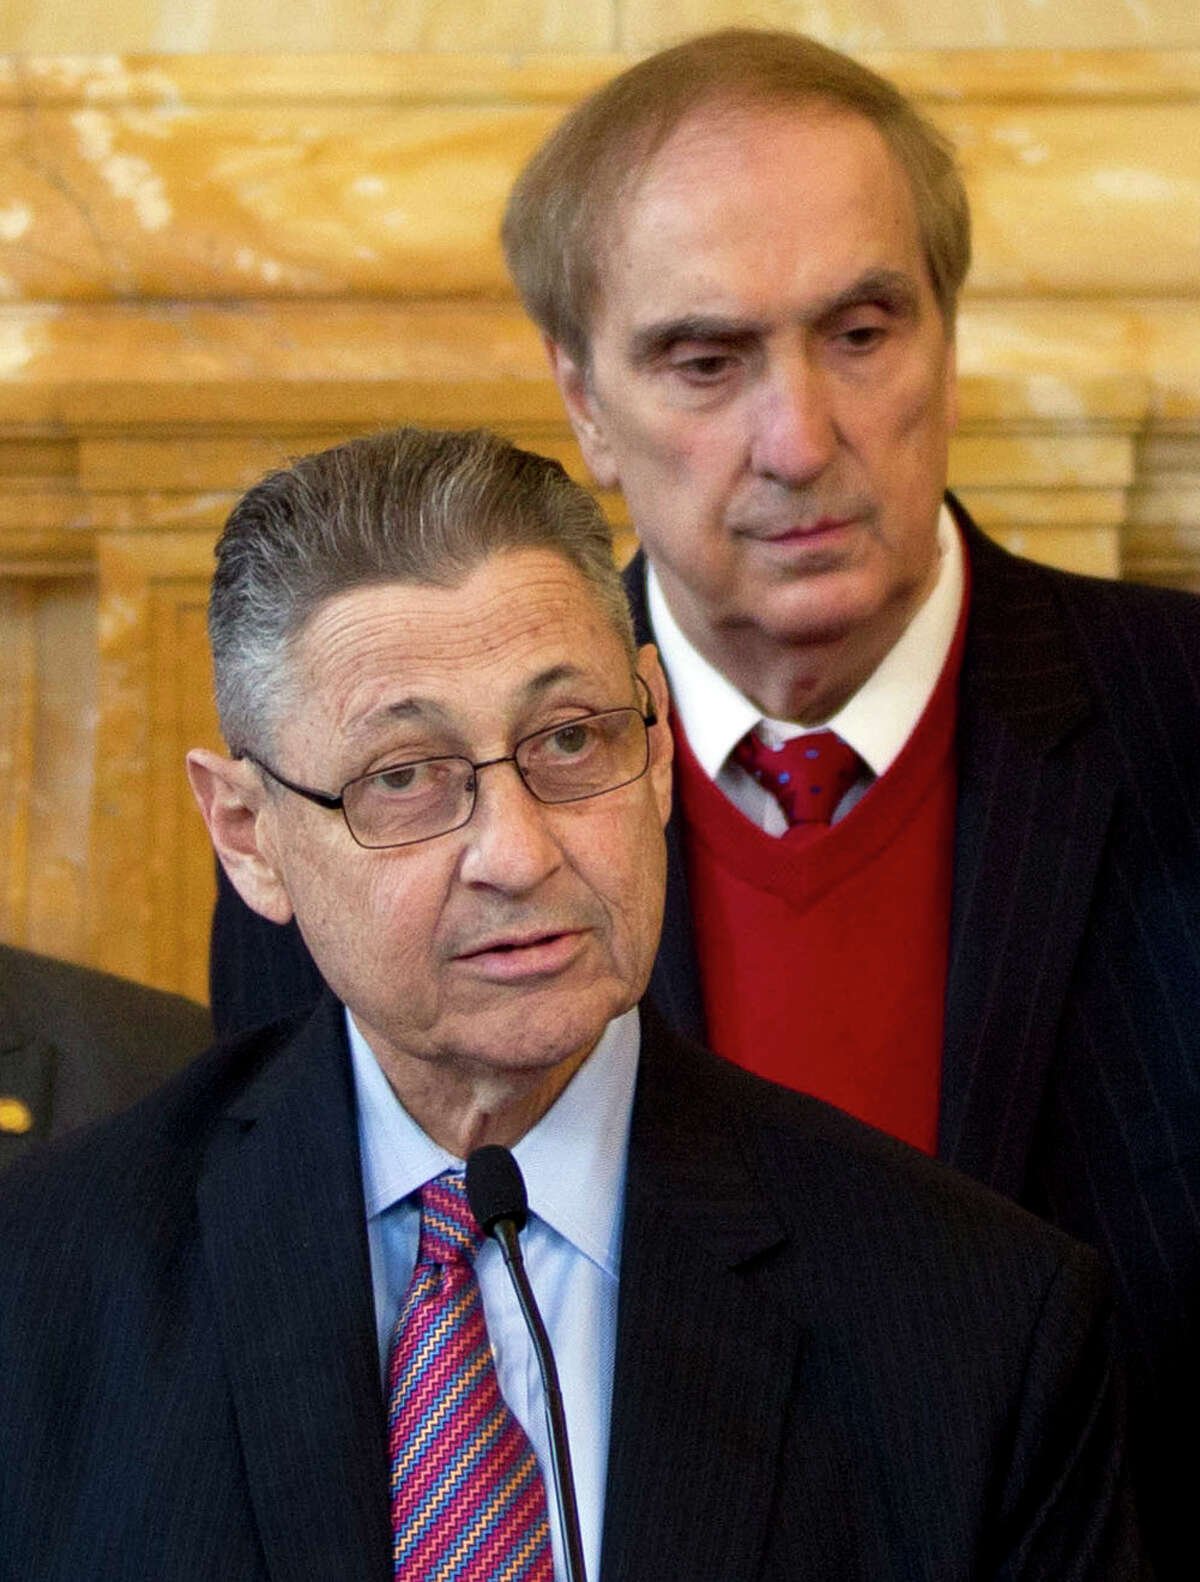 FILE - In this April 18, 2012 file photo, Assembly Speaker Sheldon Silver, D-Manhattan, speaks during an affordable housing news conference as Assemblyman Vito Lopez, D-Brooklyn, right, listens at the Capitol in Albany, N.Y. Accusations of sexual harassment that emerged over the summer have unraveled in public before a state ethics committee, revealing more sexual misconduct accusations against Lopez and a secret six-figure payoff to the accusers with taxpayer money that was approved by Silver. (AP Photo/Mike Groll, File)